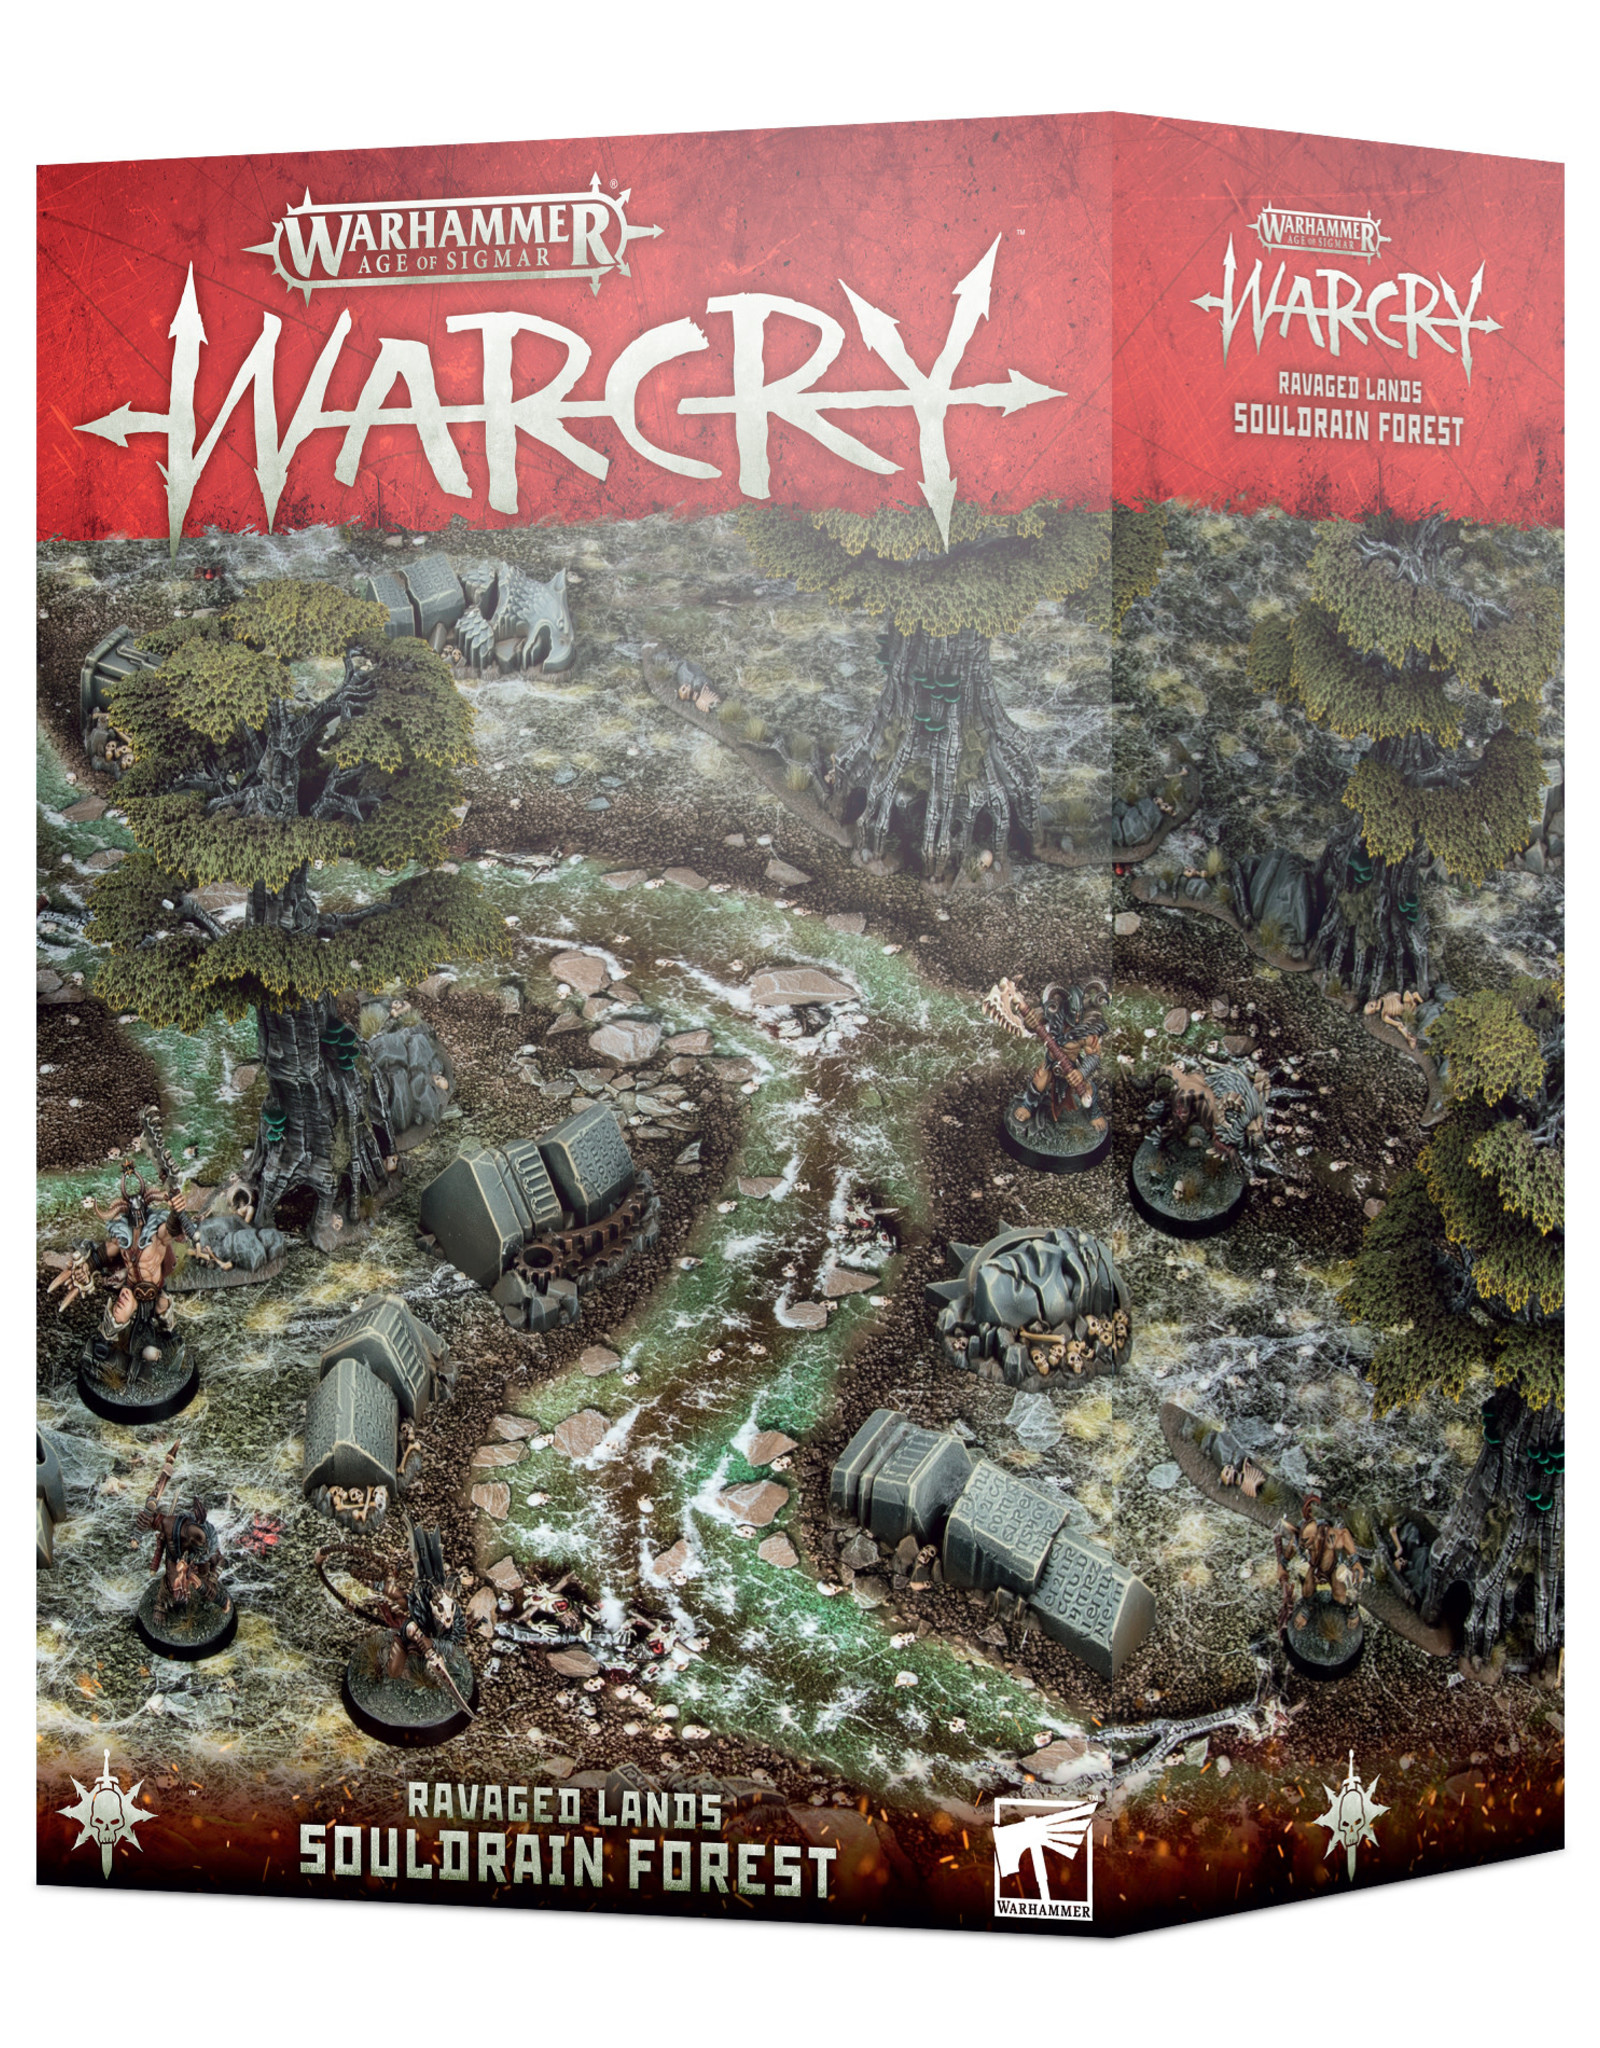 WarCry Warcry: Souldrain Forest